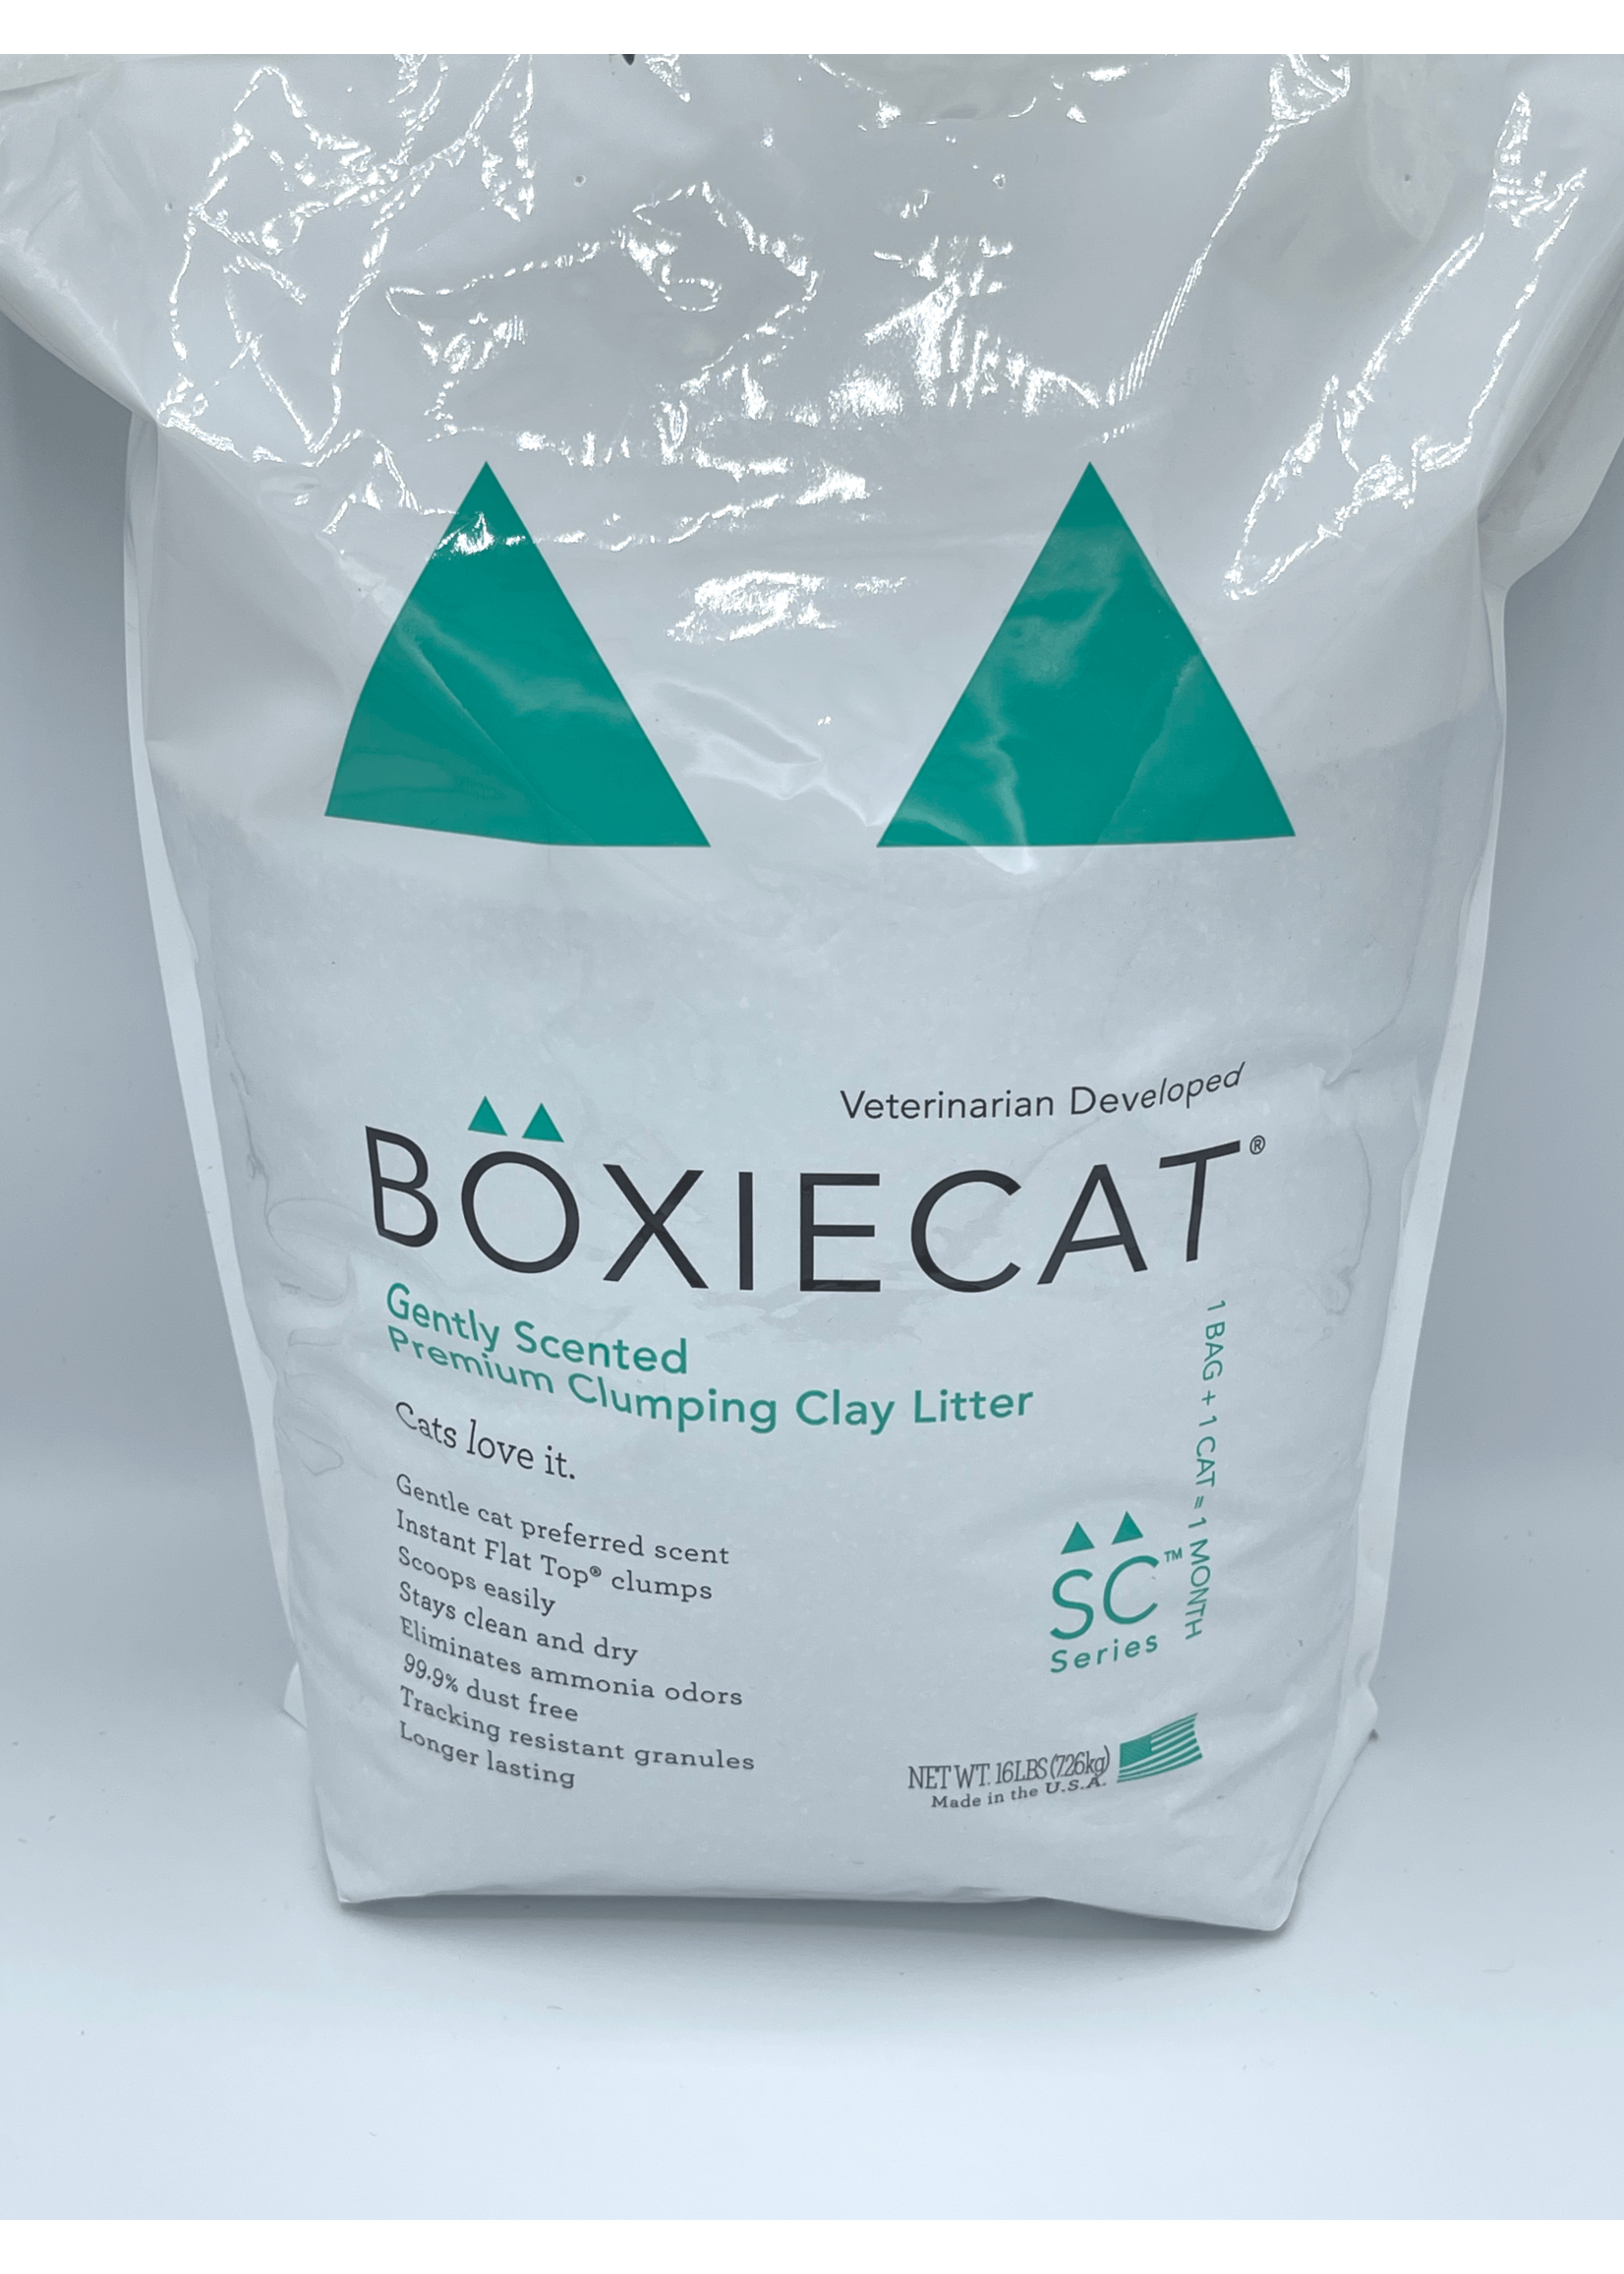 Boxie Cat Boxie Cat Gently Scented Premium Litter 16lb